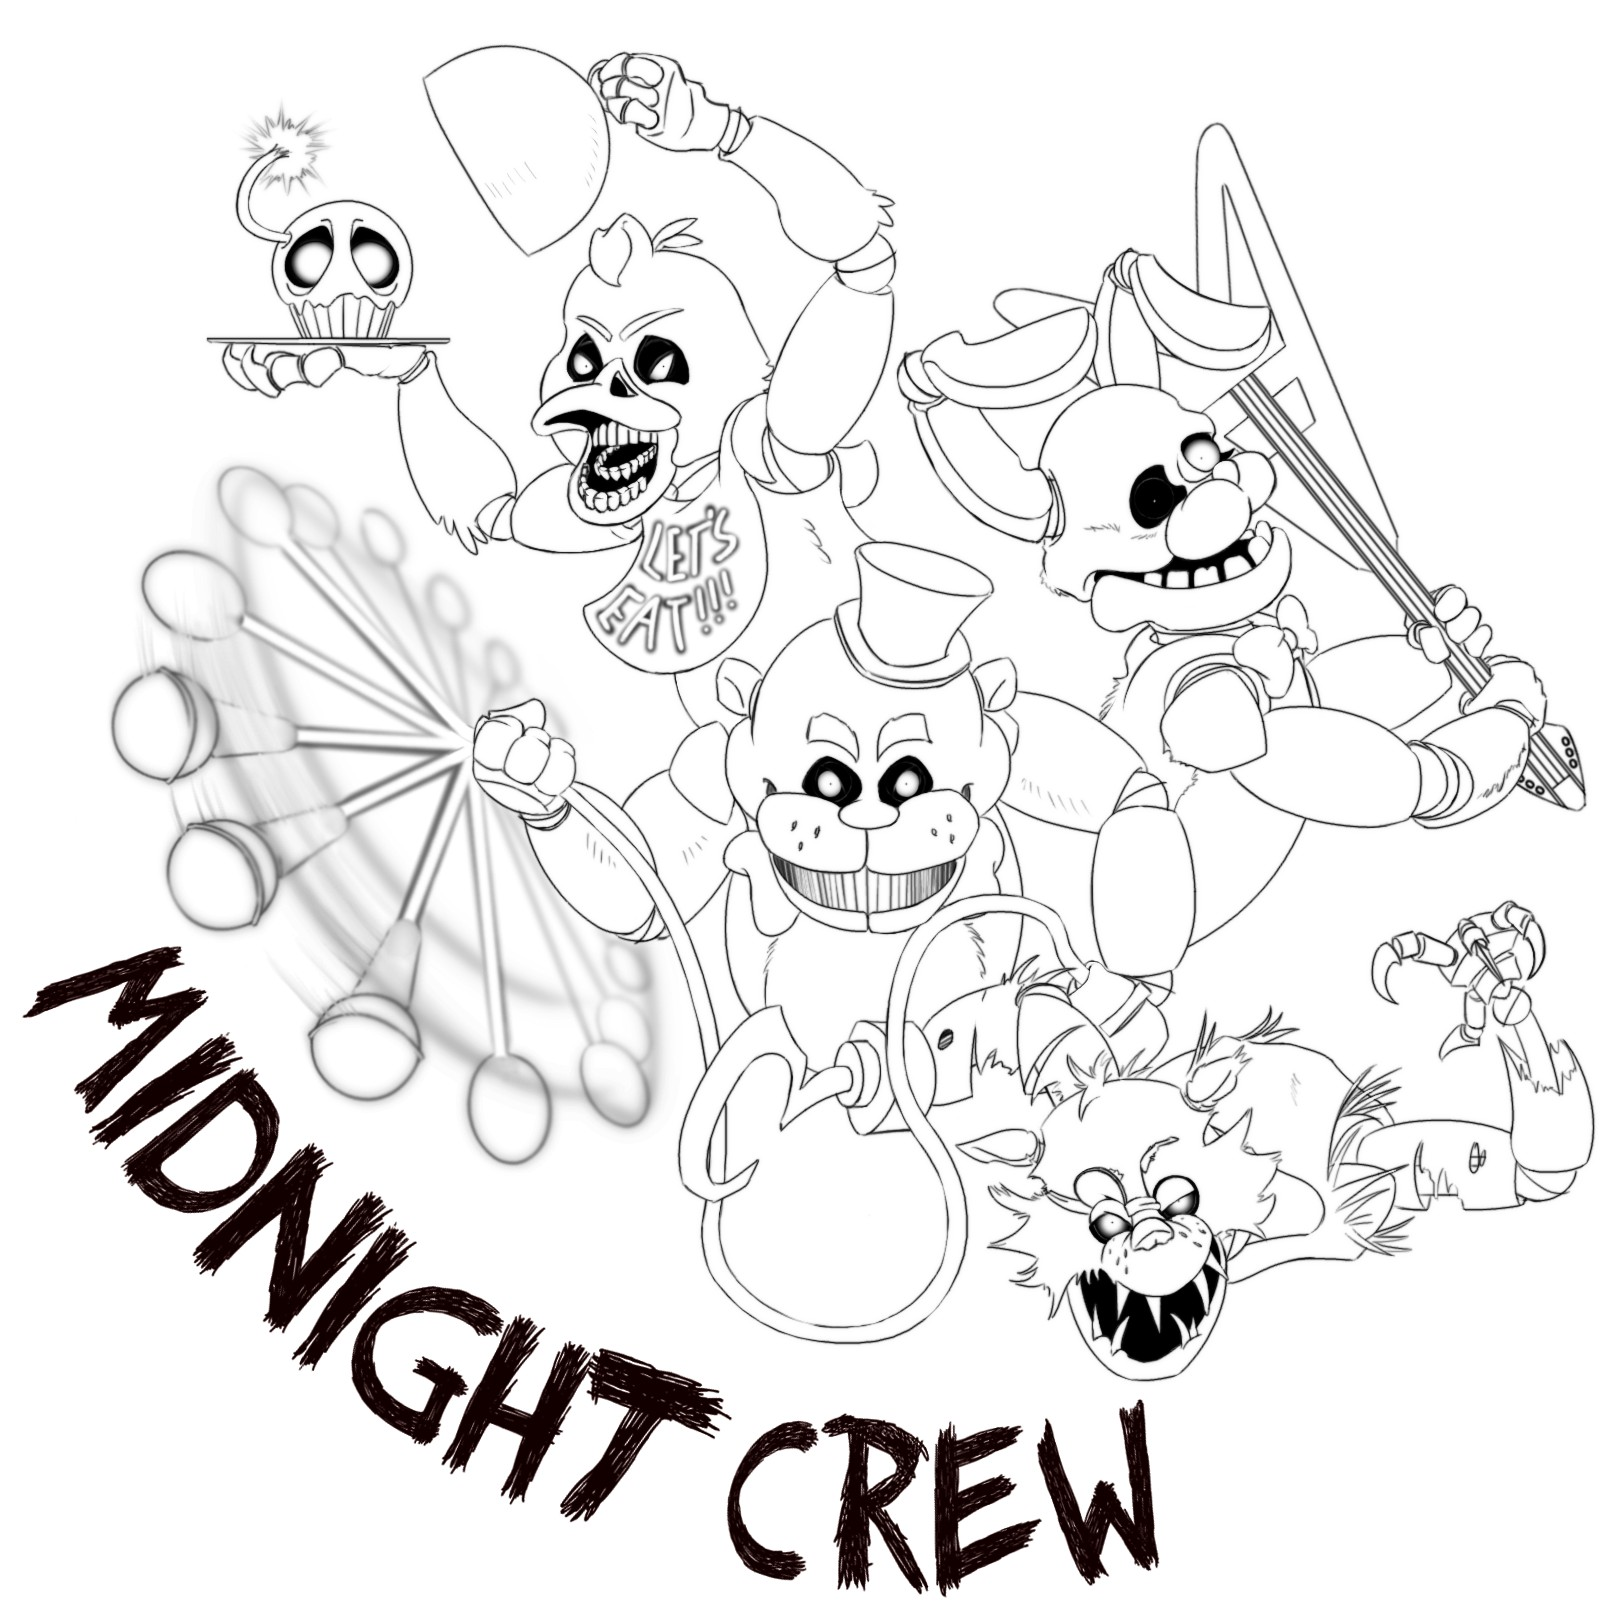 1620x1616 Halo 5 Coloring Pages Valid Fnaf 4 Coloring Pages All Characters